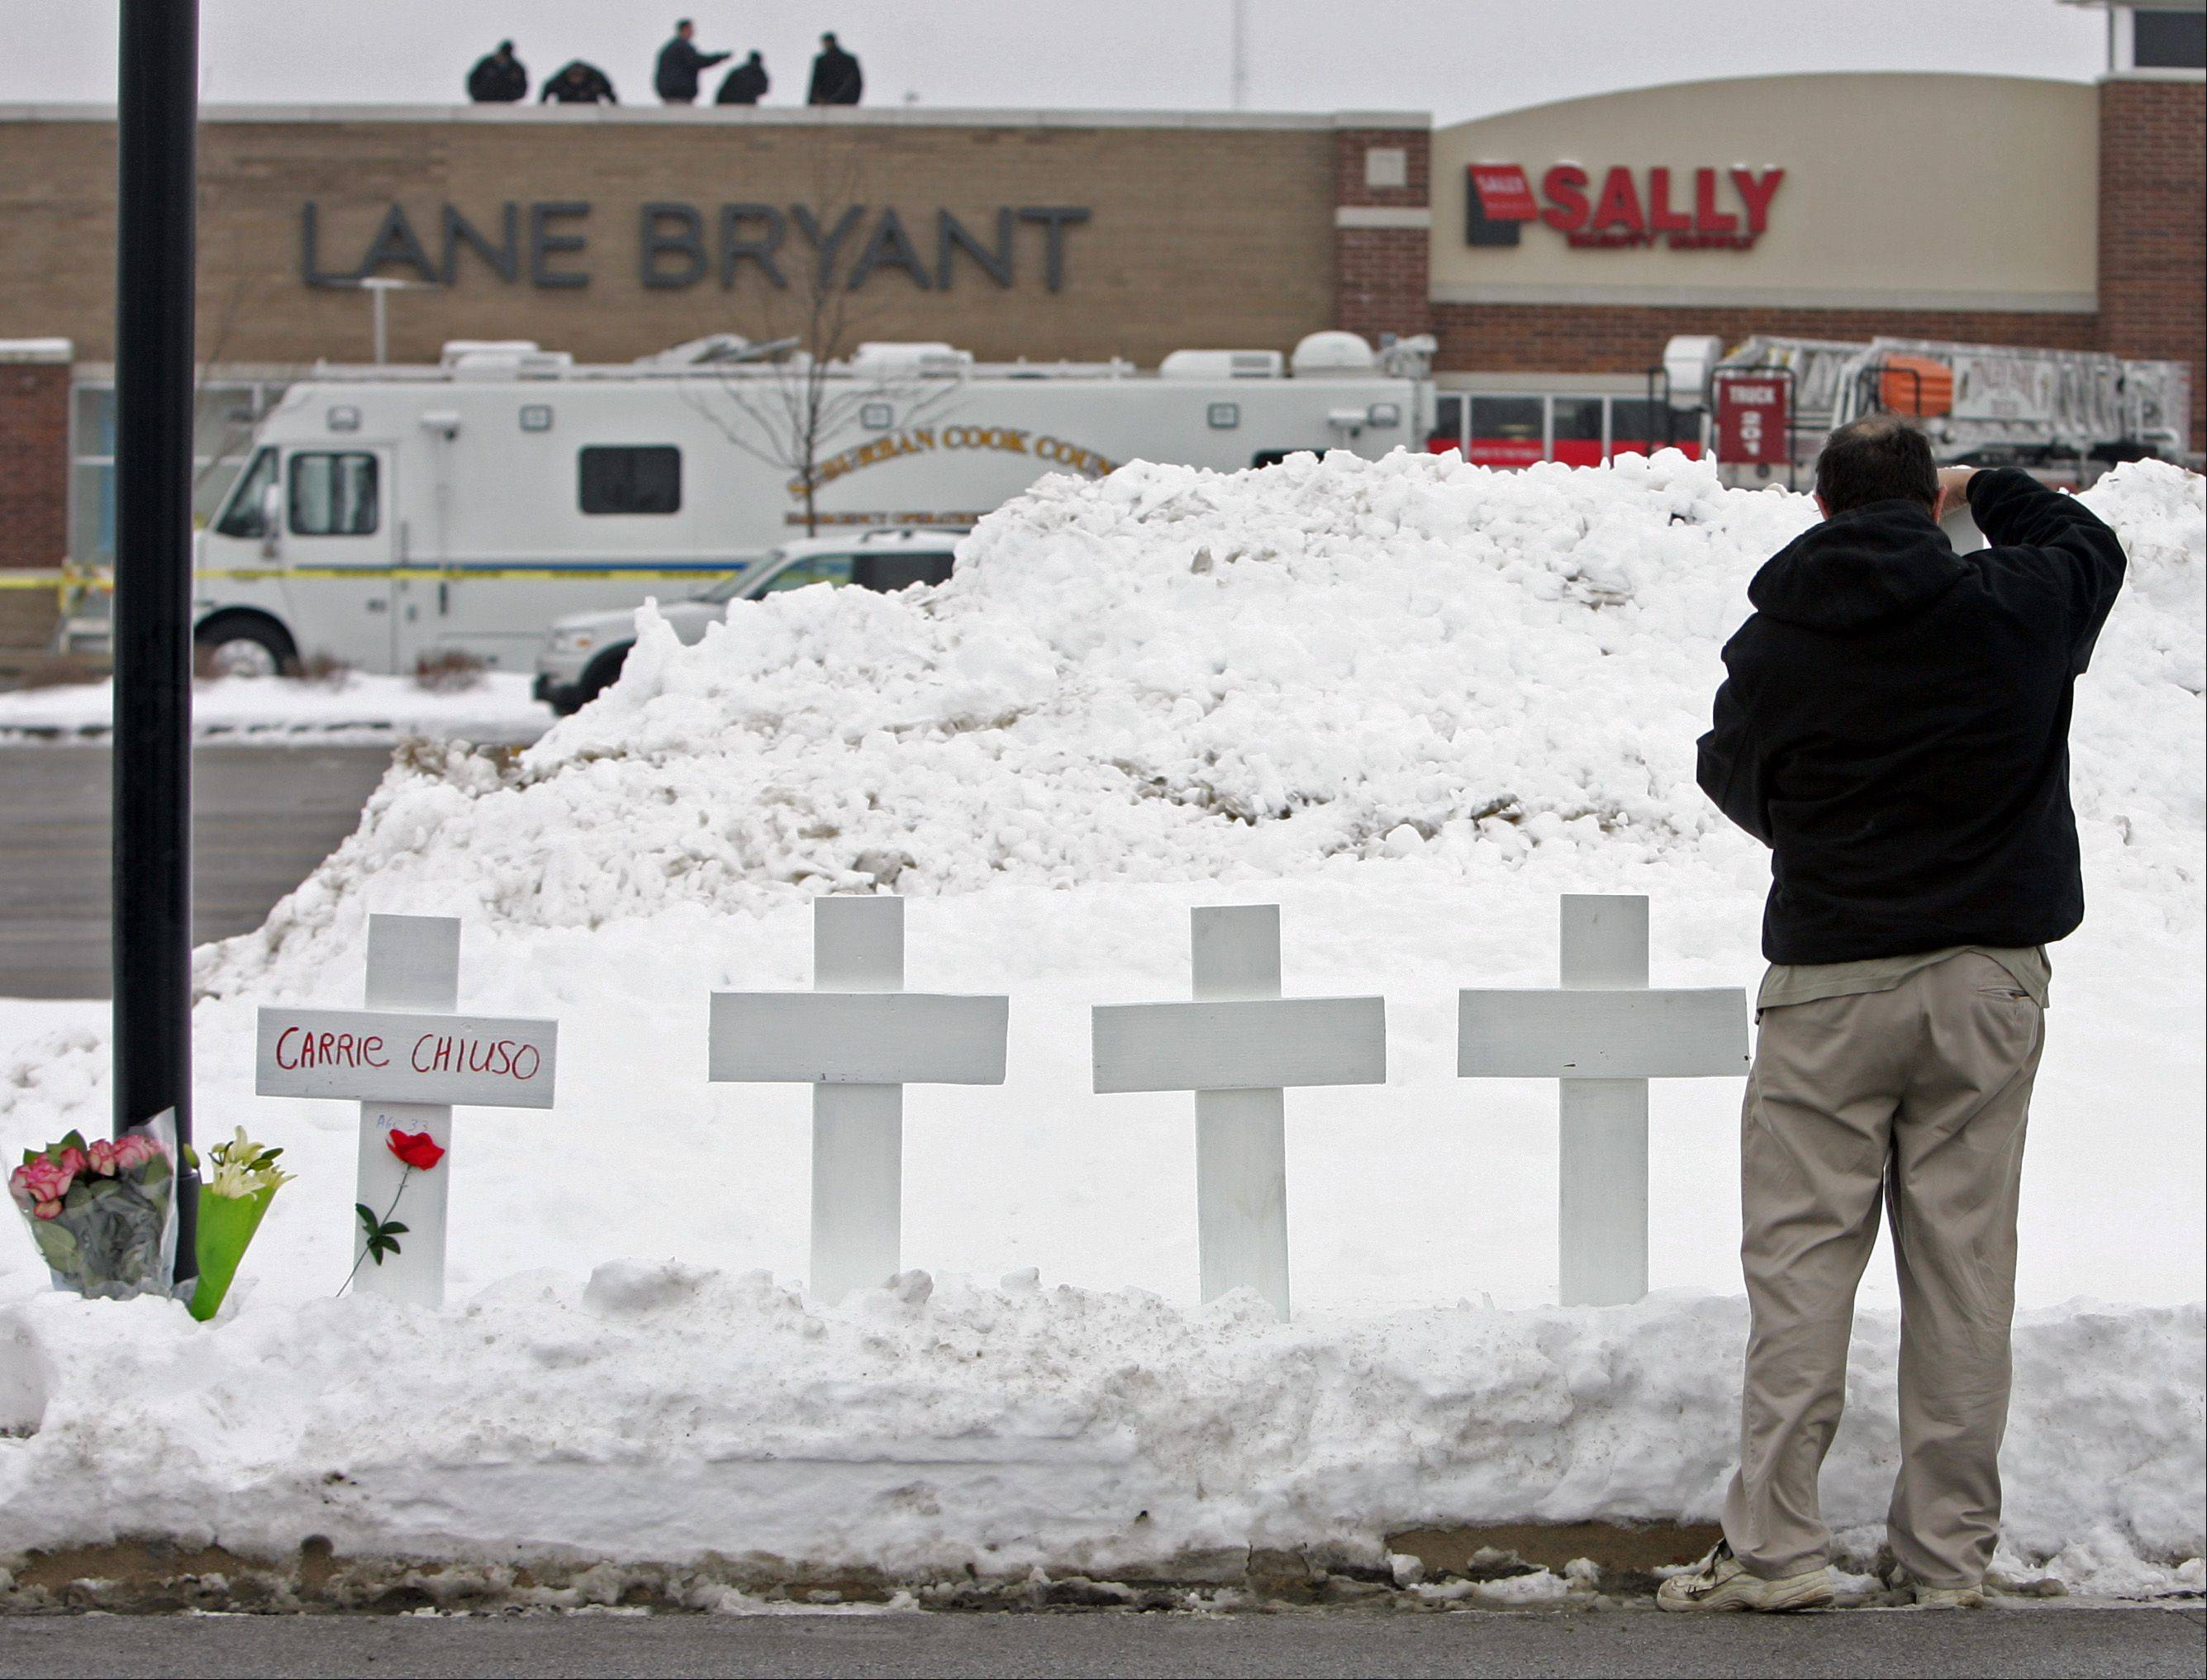 Greg Zanis of Sugar Grove puts up five crosses and leaves flowers at the Lane Bryant store in Tinley Park on Feb. 3, 2008.